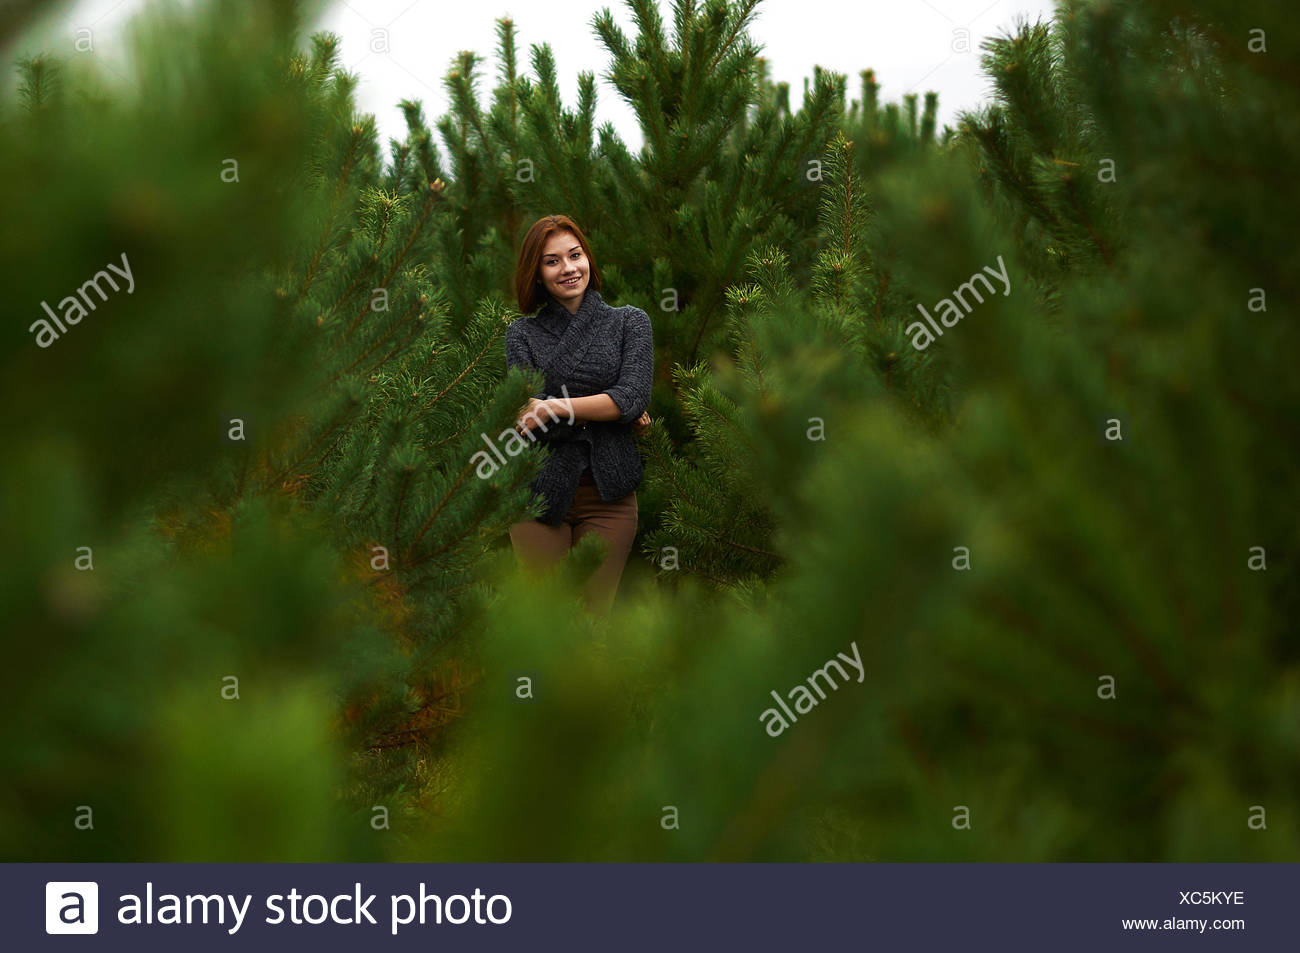 Portrait of young woman standing amongst young pine trees - Stock Image